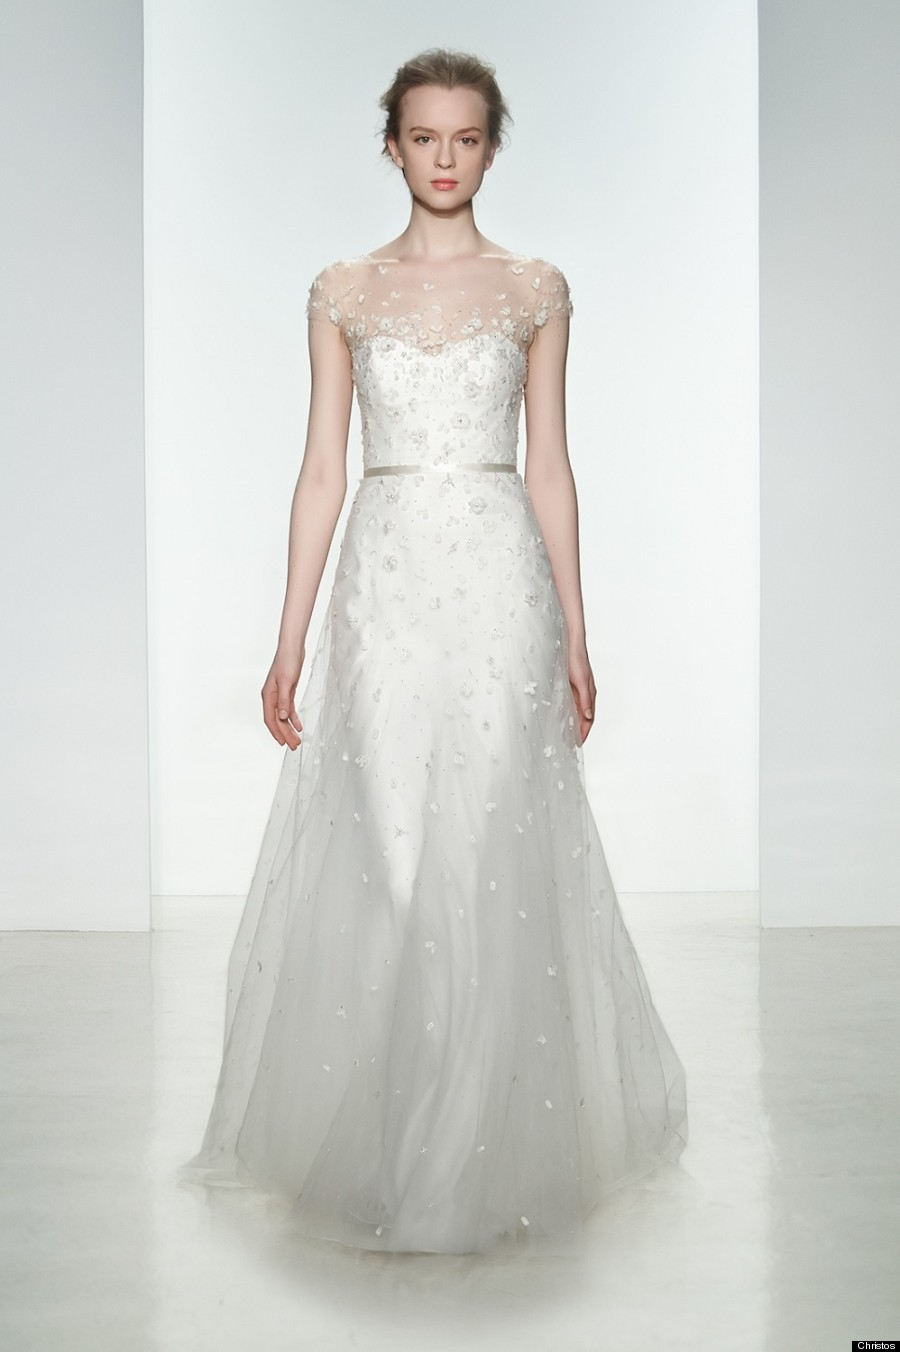 Spring Wedding Dresses: 20 Beautiful Gowns For Your Special Day (PHOTOS)